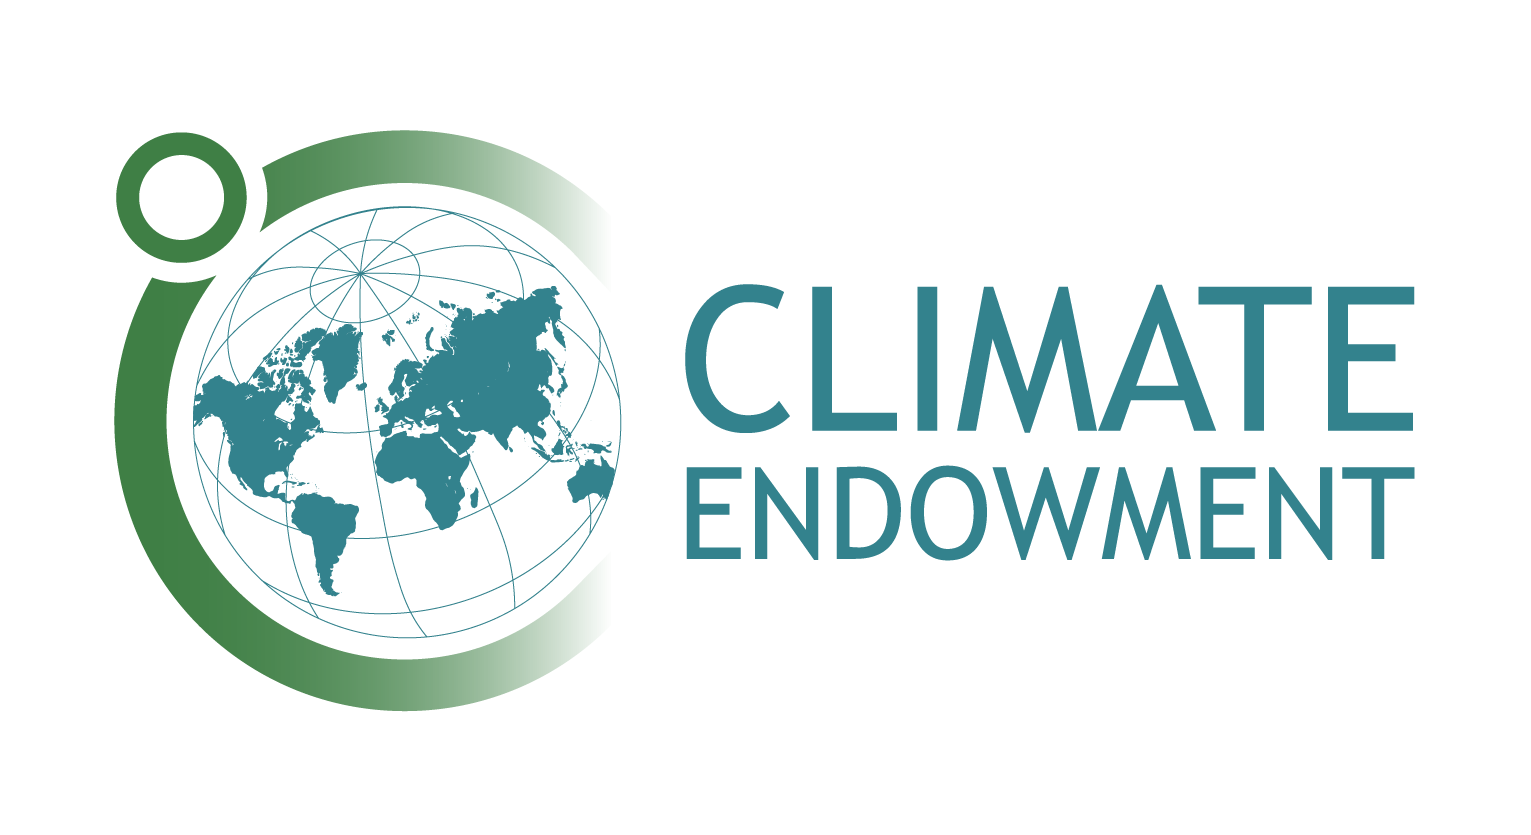 Climate Endowment Group